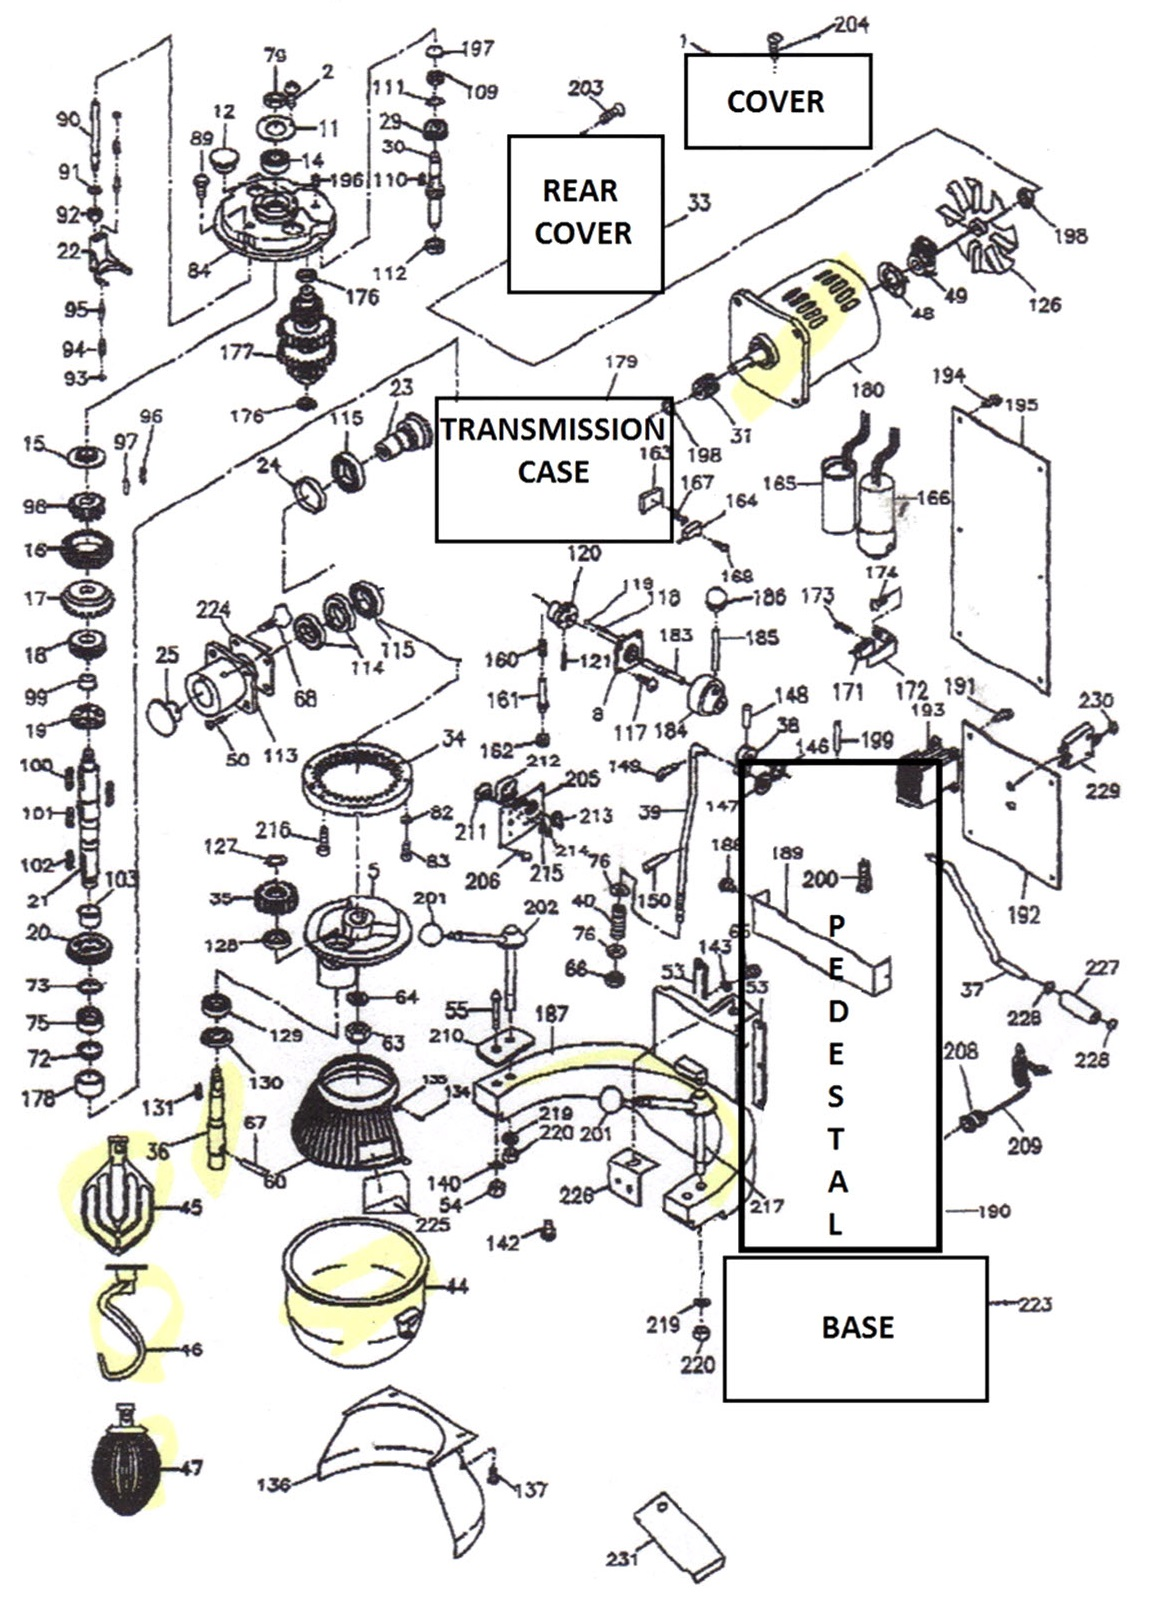 [MD_1595] Thunderbird Mixer Wiring Diagram Free Diagram